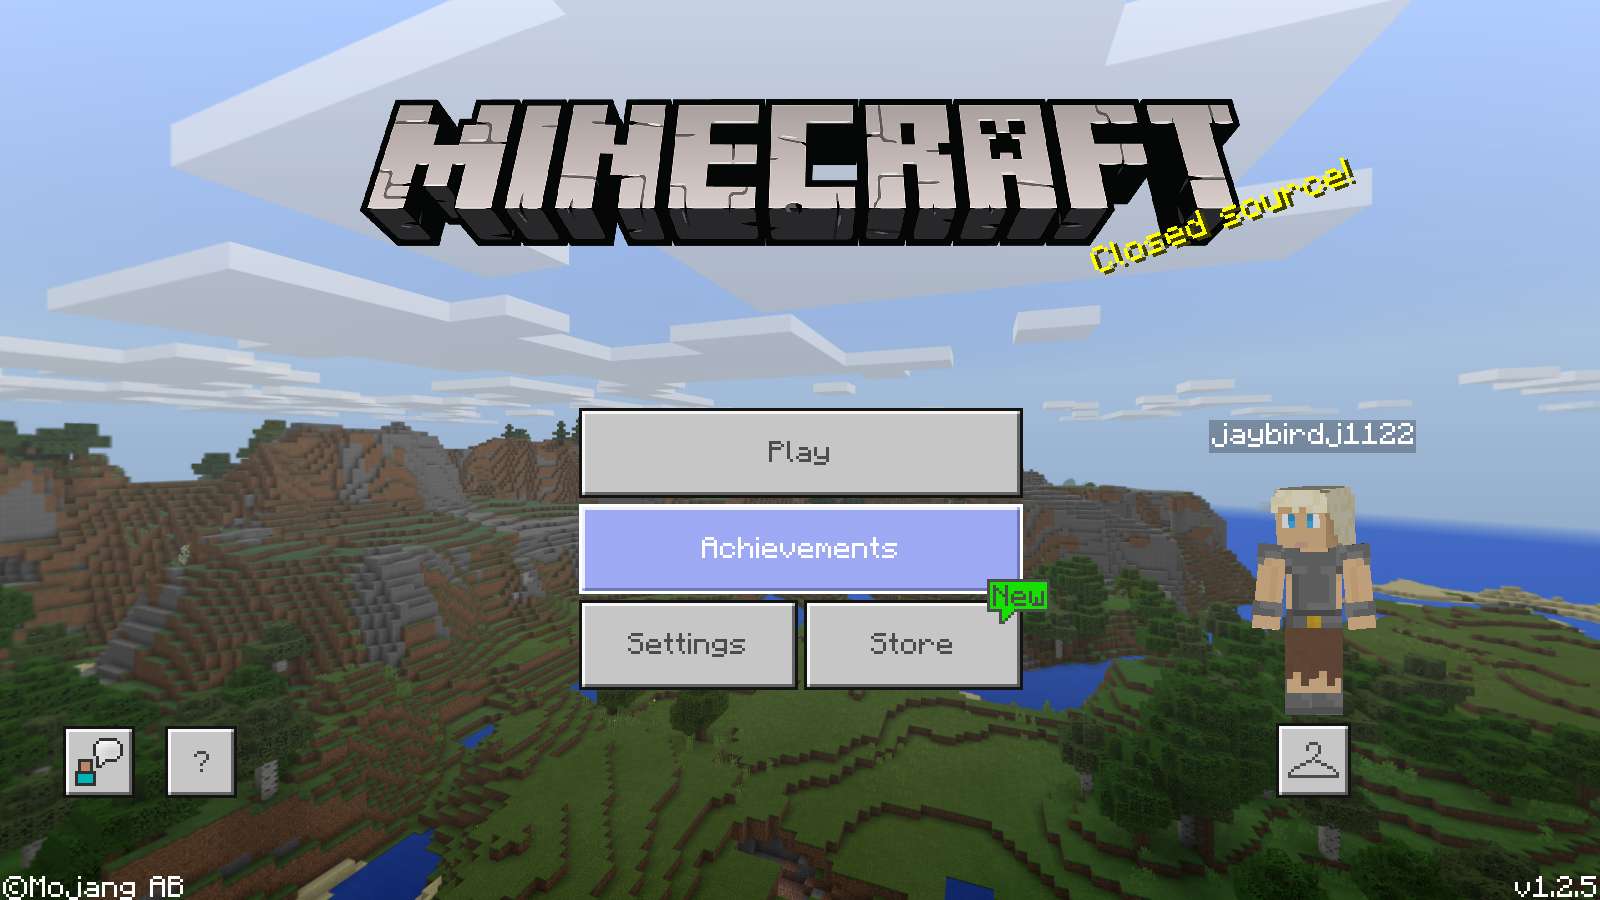 Minecraft pocket edition multiplayer unable to connect to